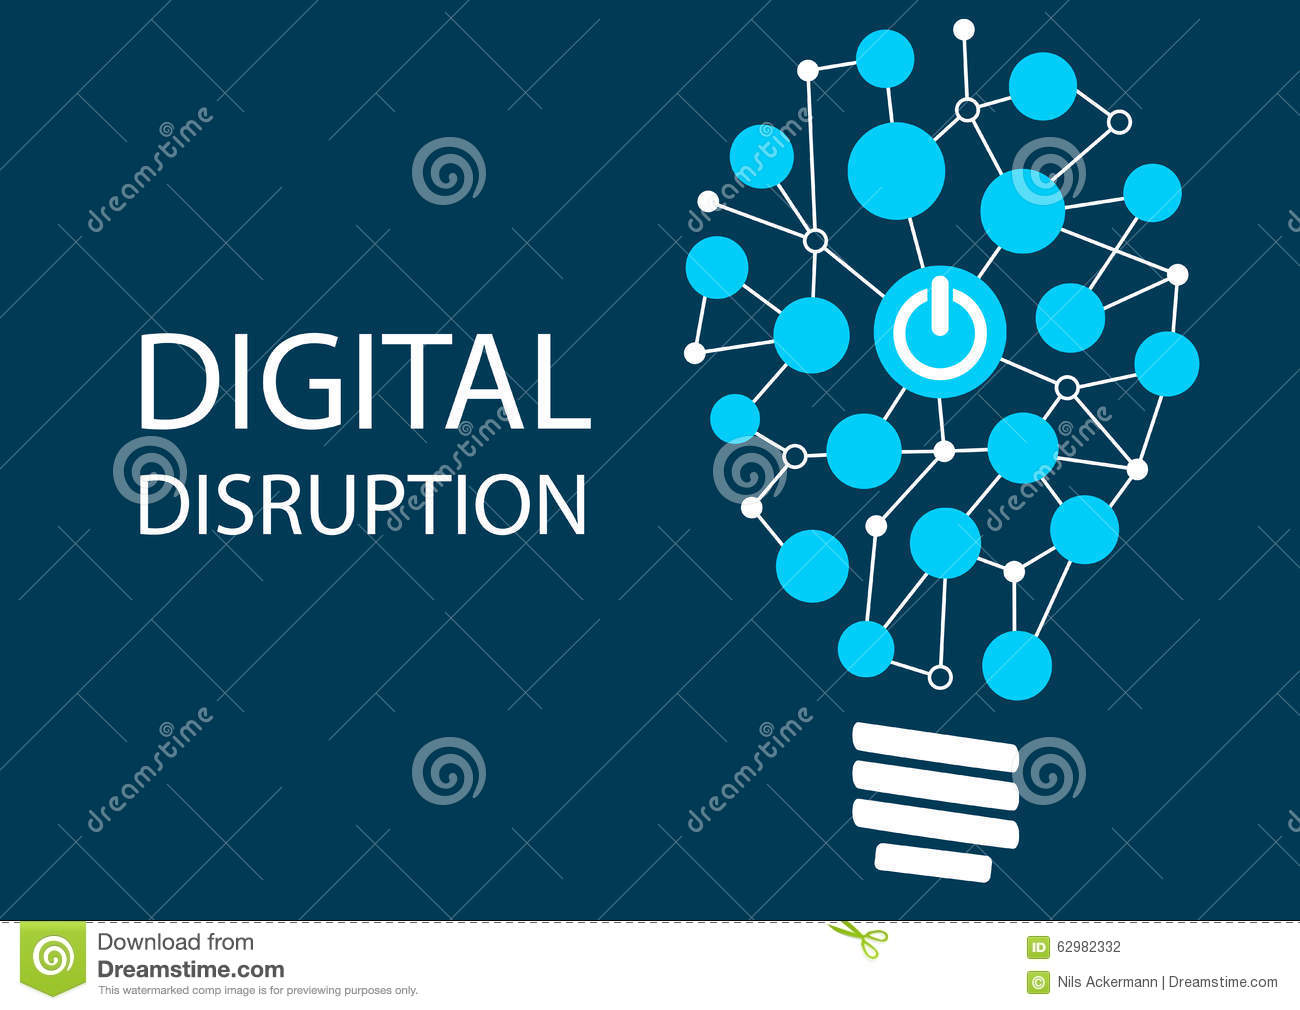 Digital disruption concept. Vector illustration background for innovation IT technology